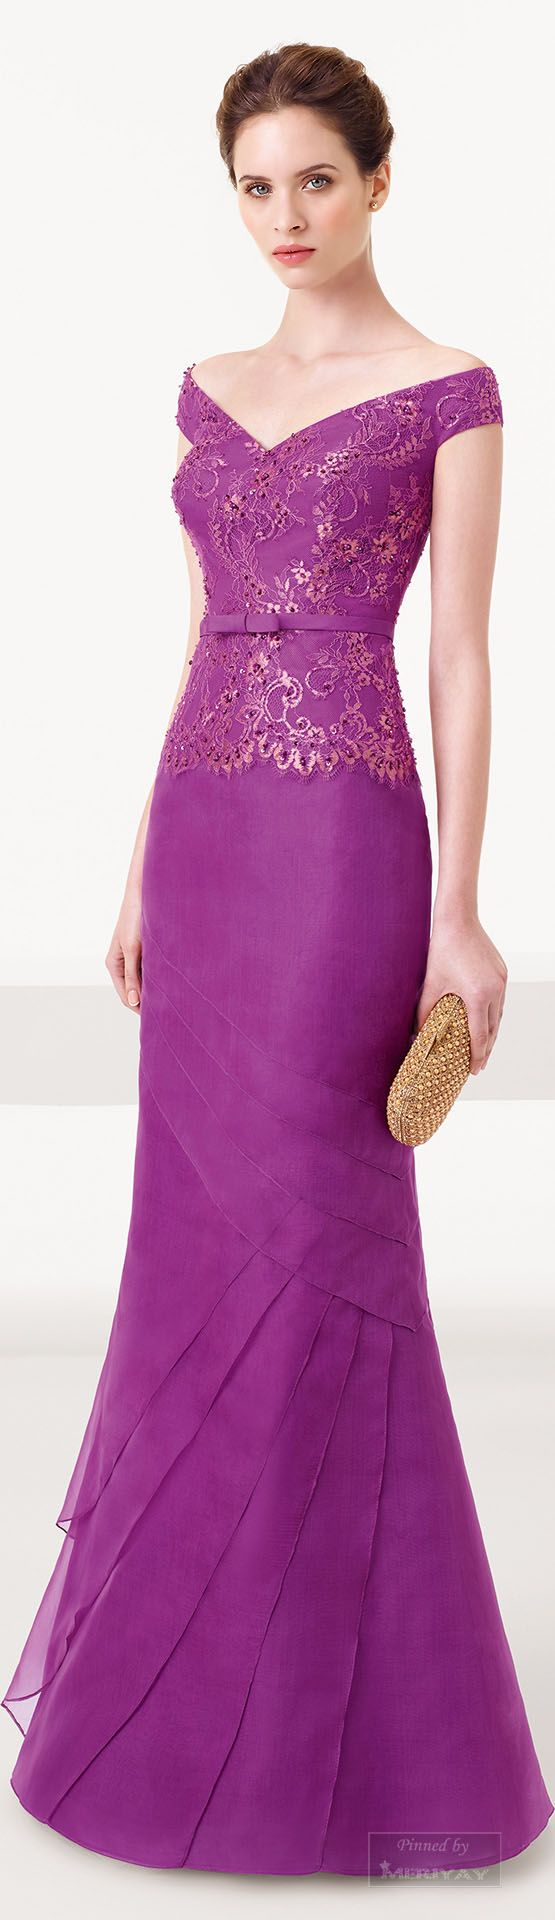 Aire Barcelona Evening Gown, Violet, 2015.